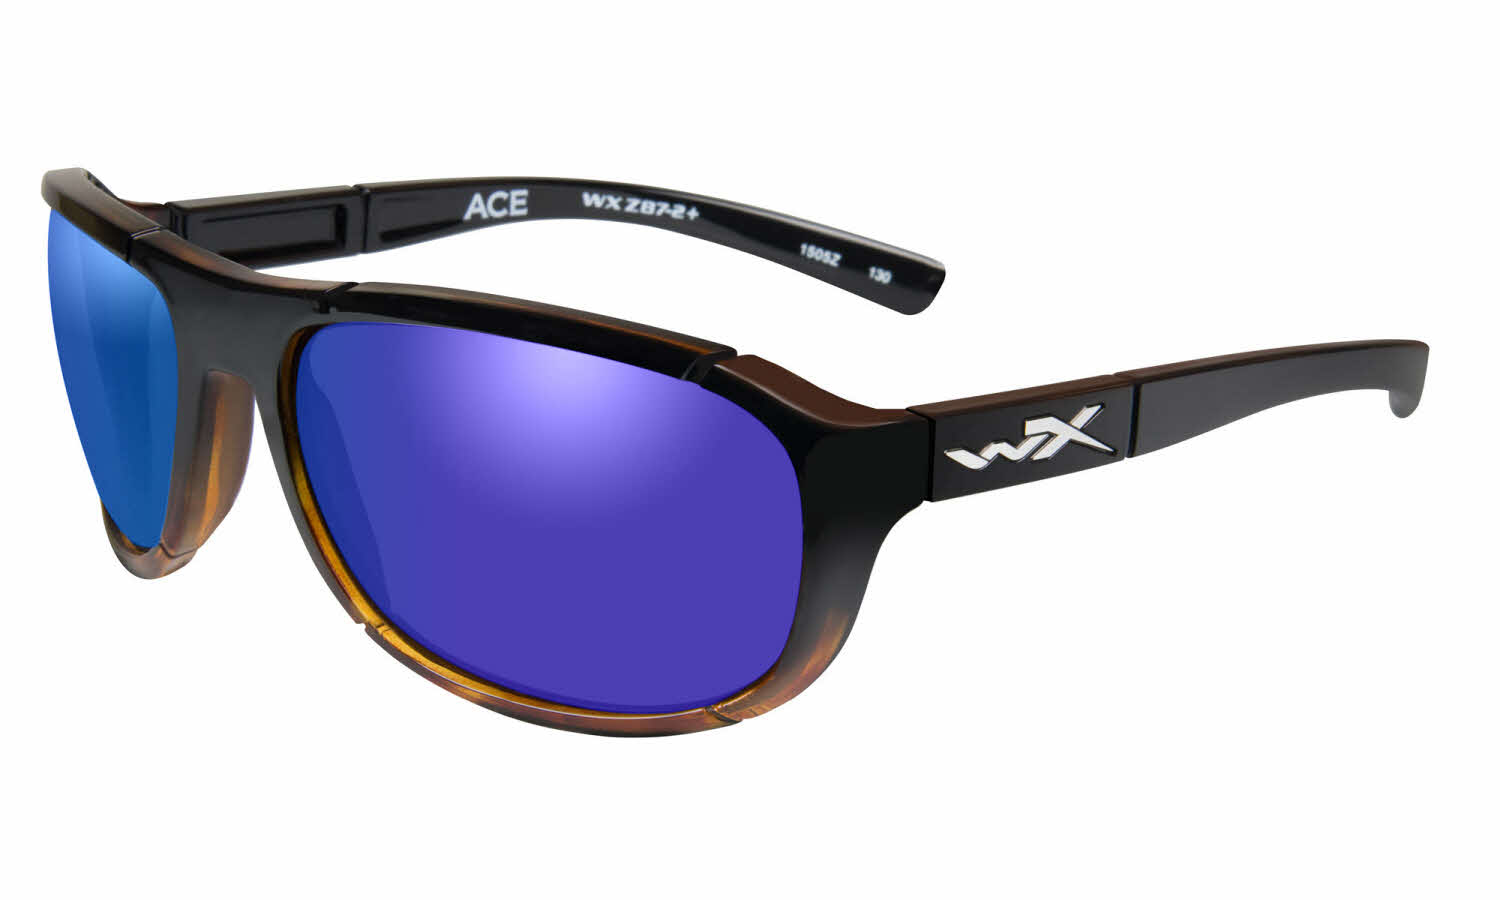 Wiley X WX Ace Prescription Sunglasses